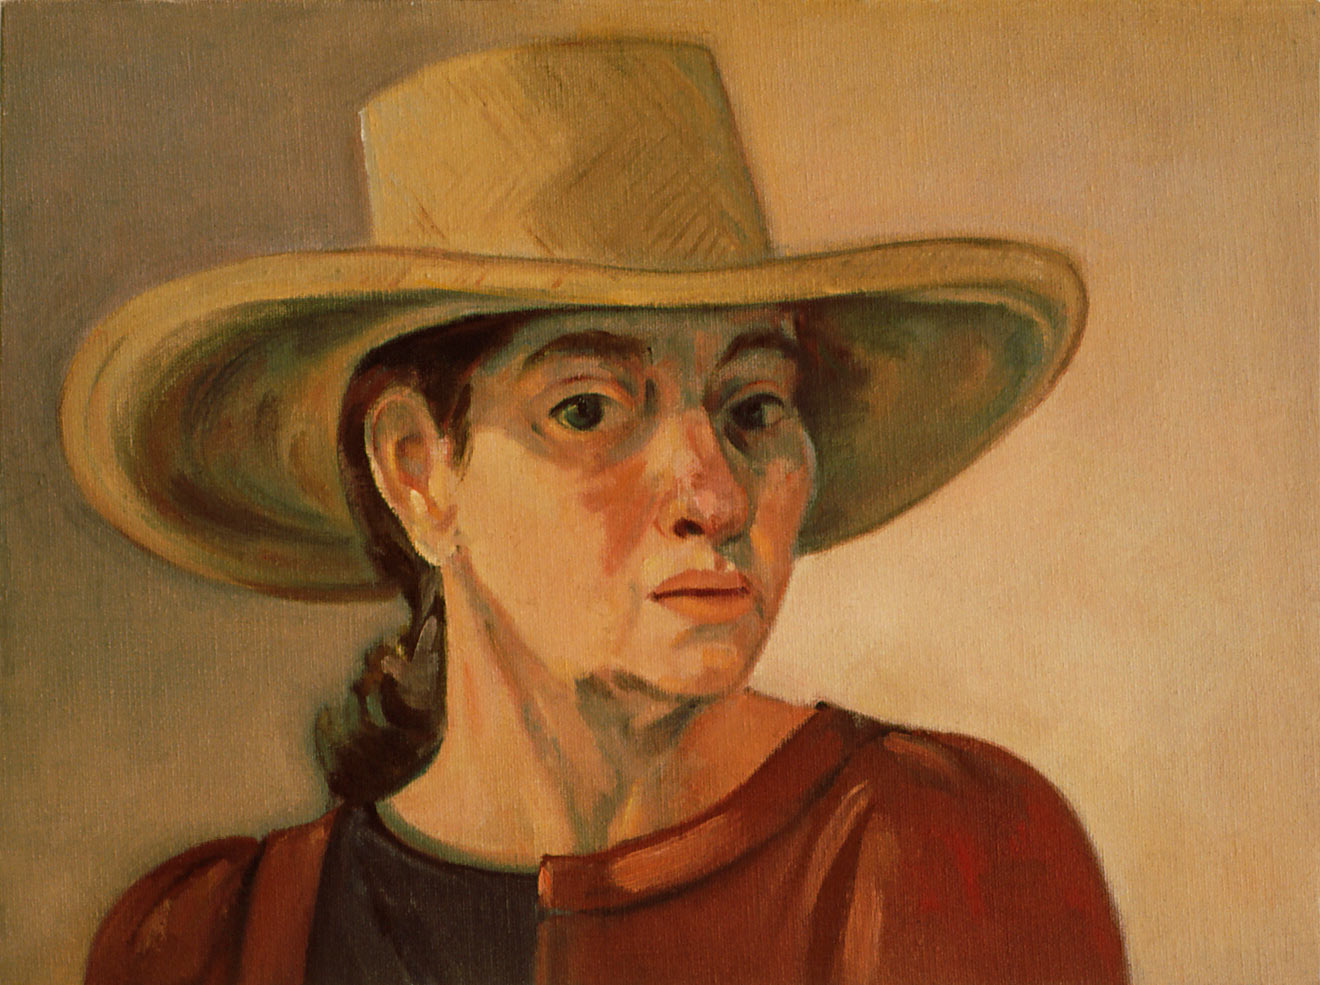 Self Portrait in Straw Hat by Ethel Fisher, 1988, oil on canvas, 12 x 16 inches, twentieth century figure painting.